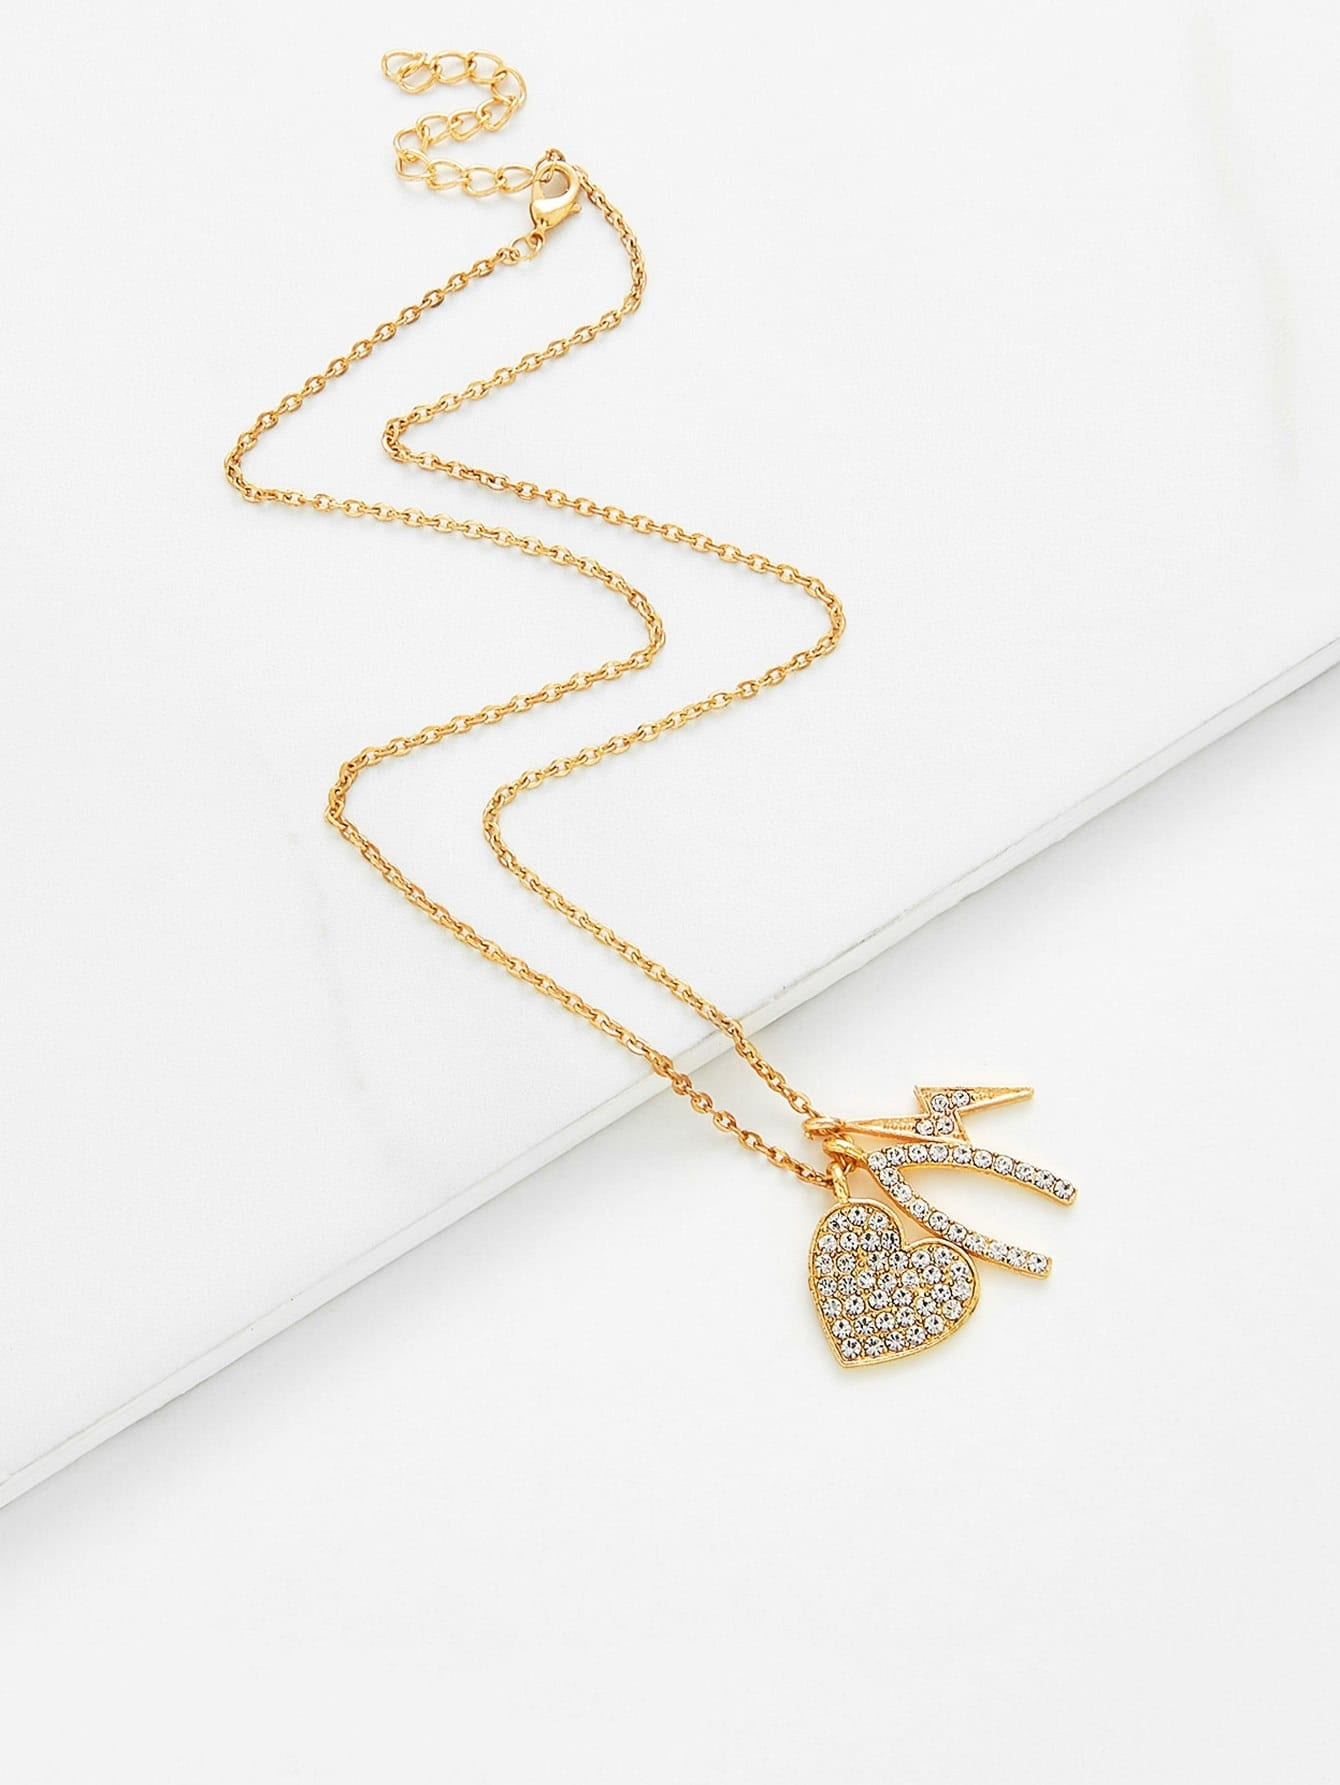 Rhinestone Heart & Flash Pendant Chain Necklace rhinestone heart chain pendant necklace